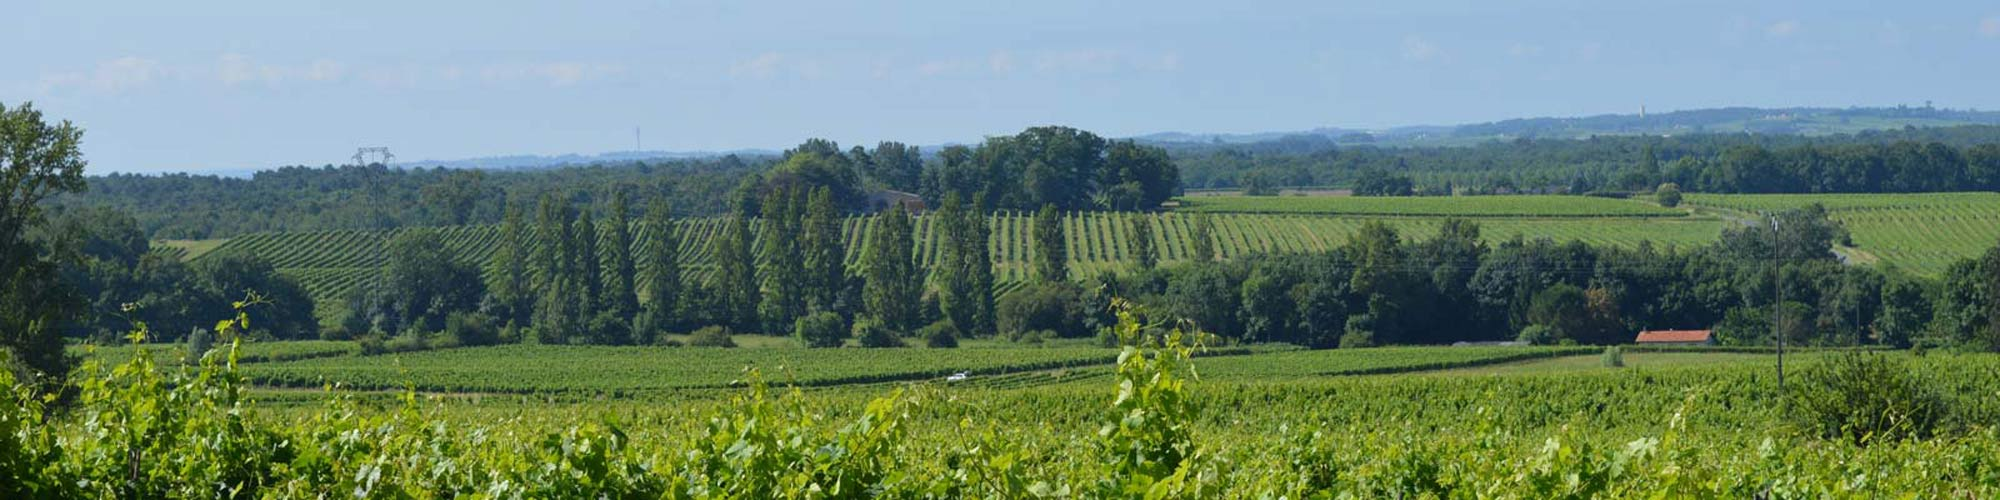 terroir_bordeaux_grangeneuve